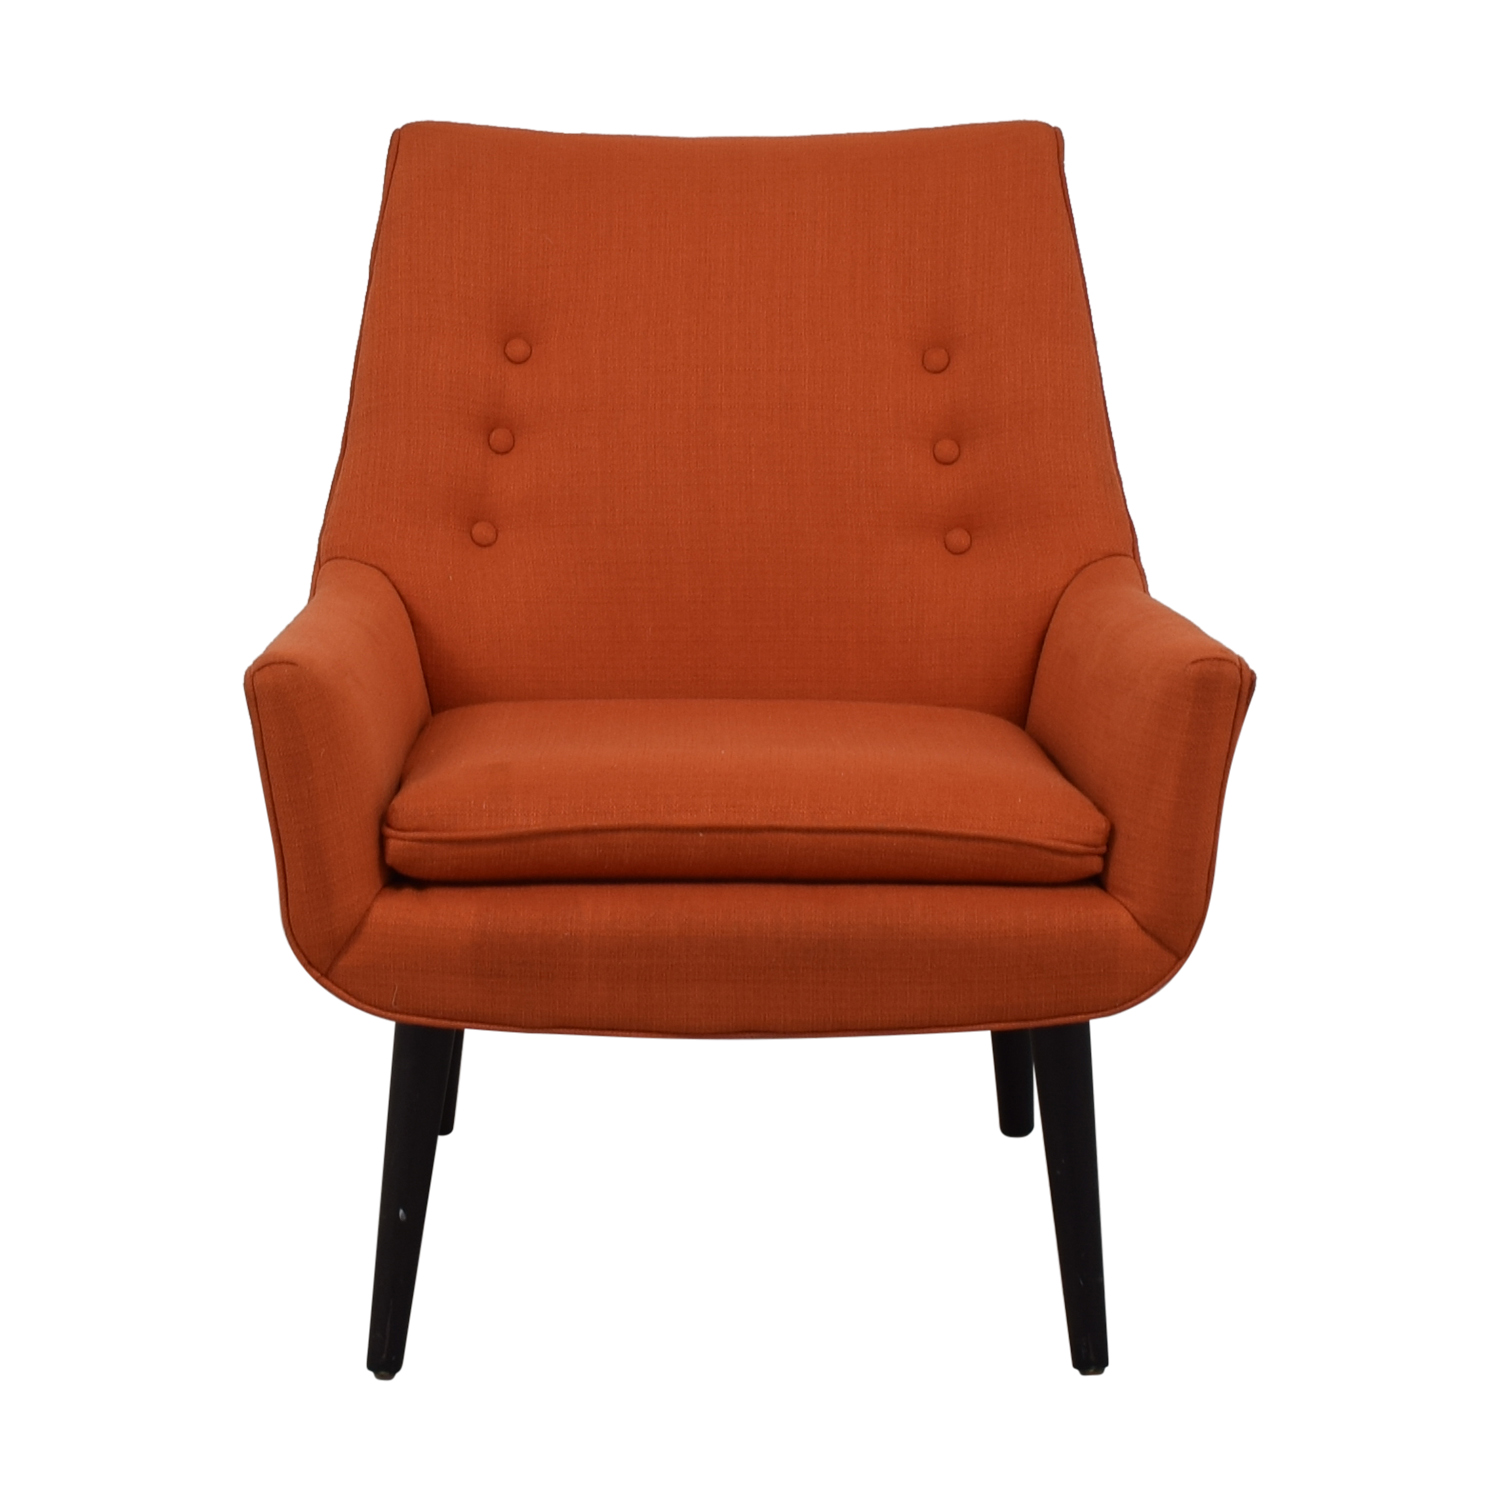 Johnathan Alder Johnathan Alder Mrs. Godfrey's Orange Accent Chair discount